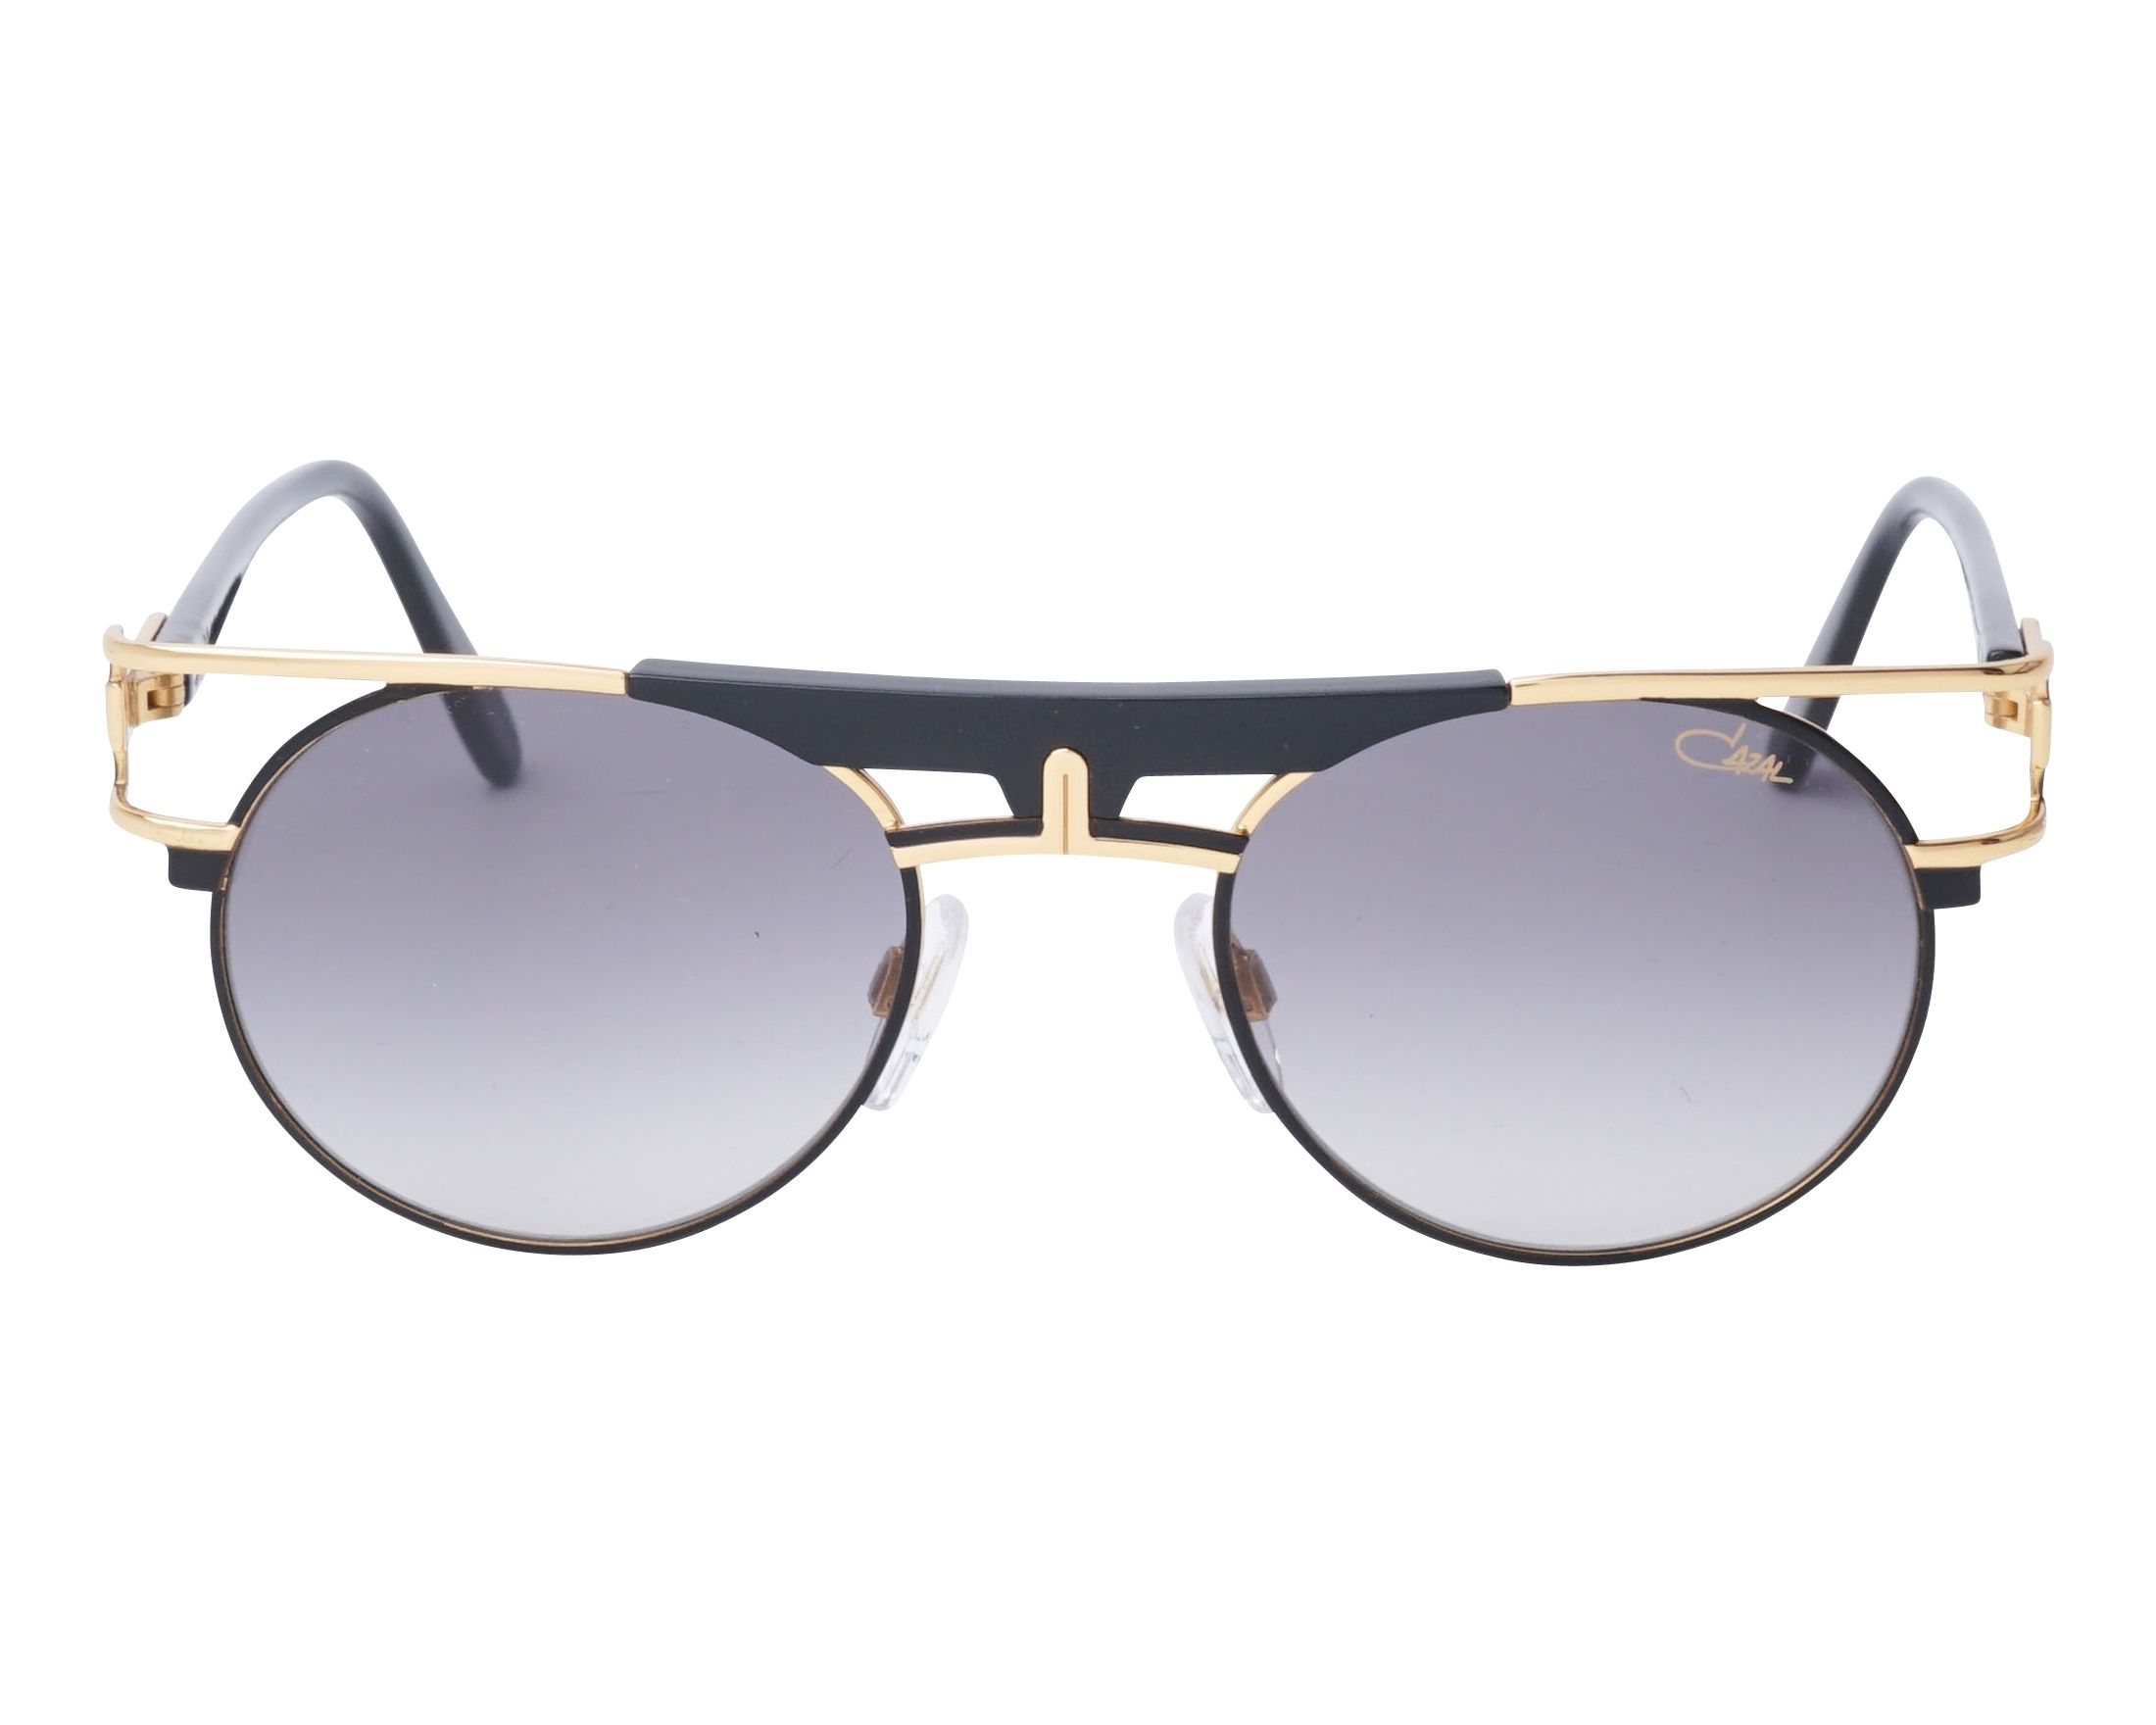 0cd95bb3a9 Sunglasses Cazal 989 001 50-21 Black Gold front view